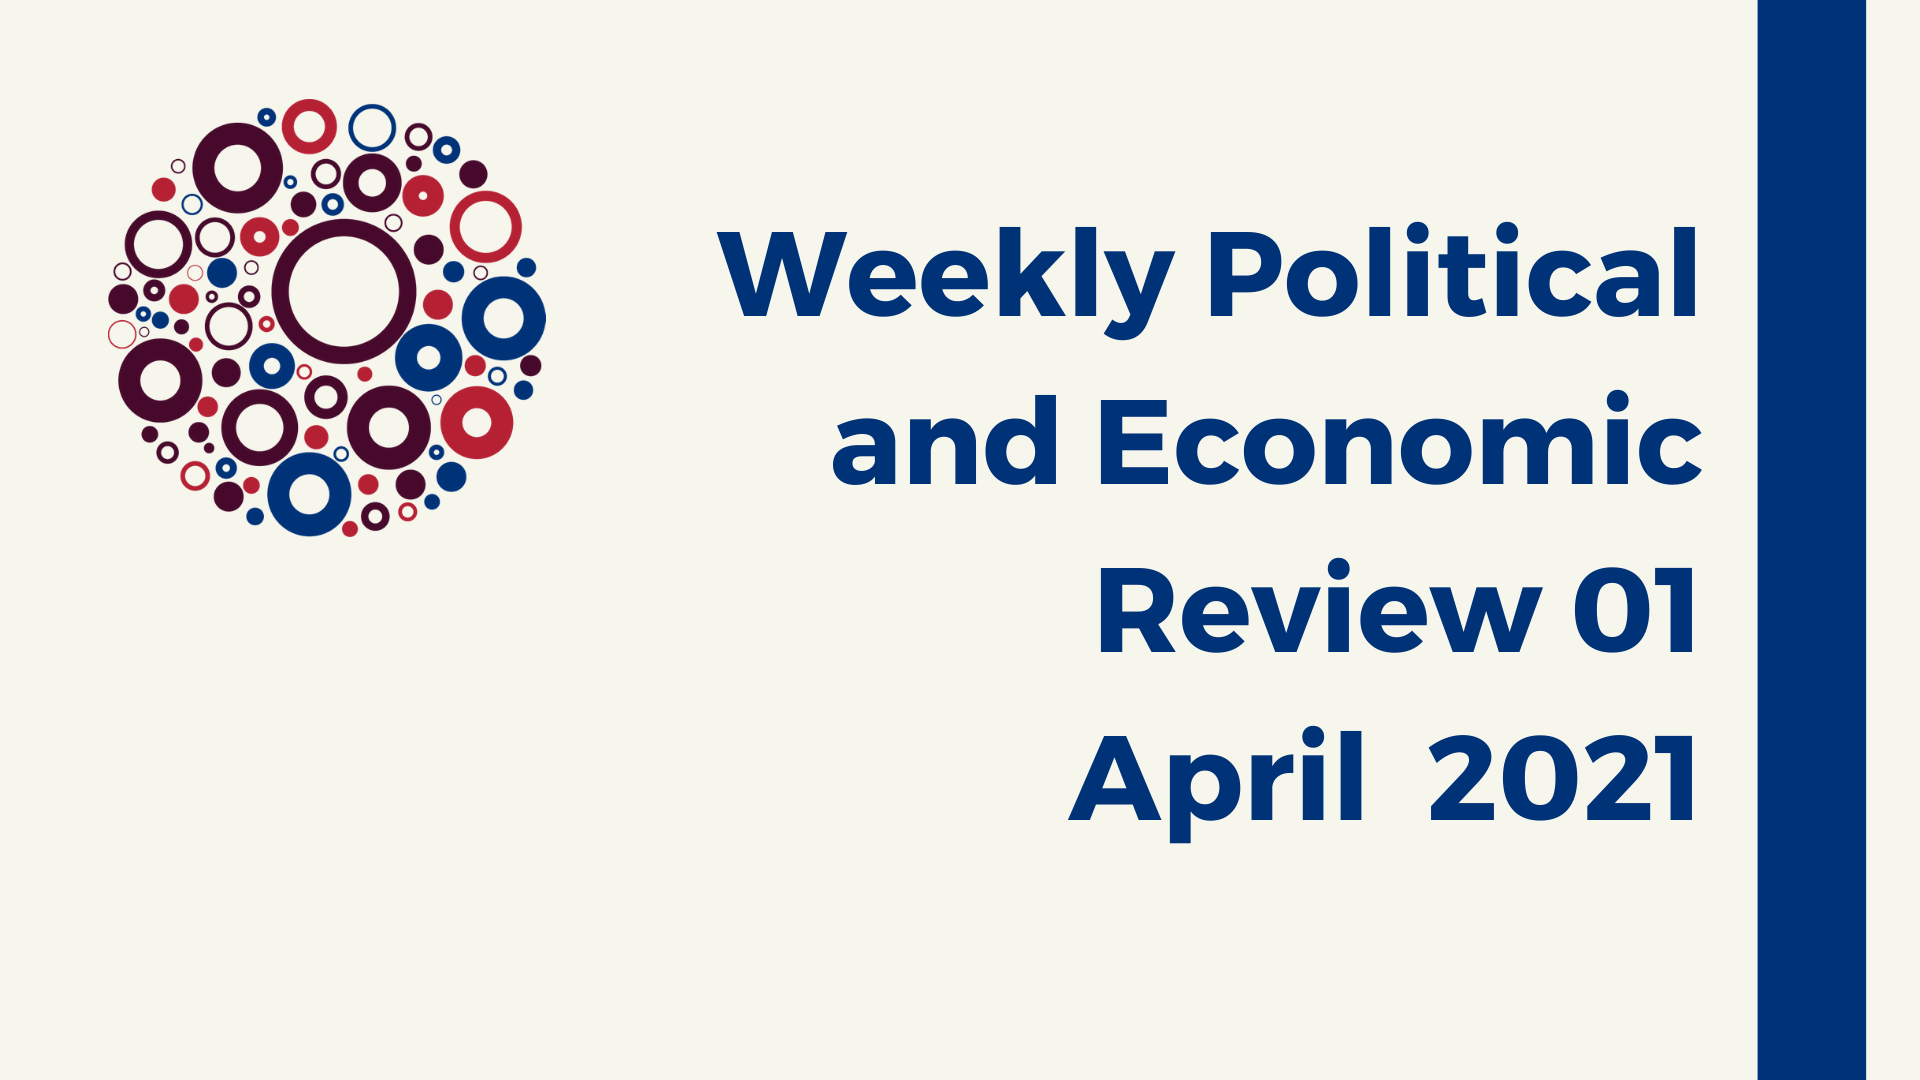 Weekly Political and Economic review 01 April 2021